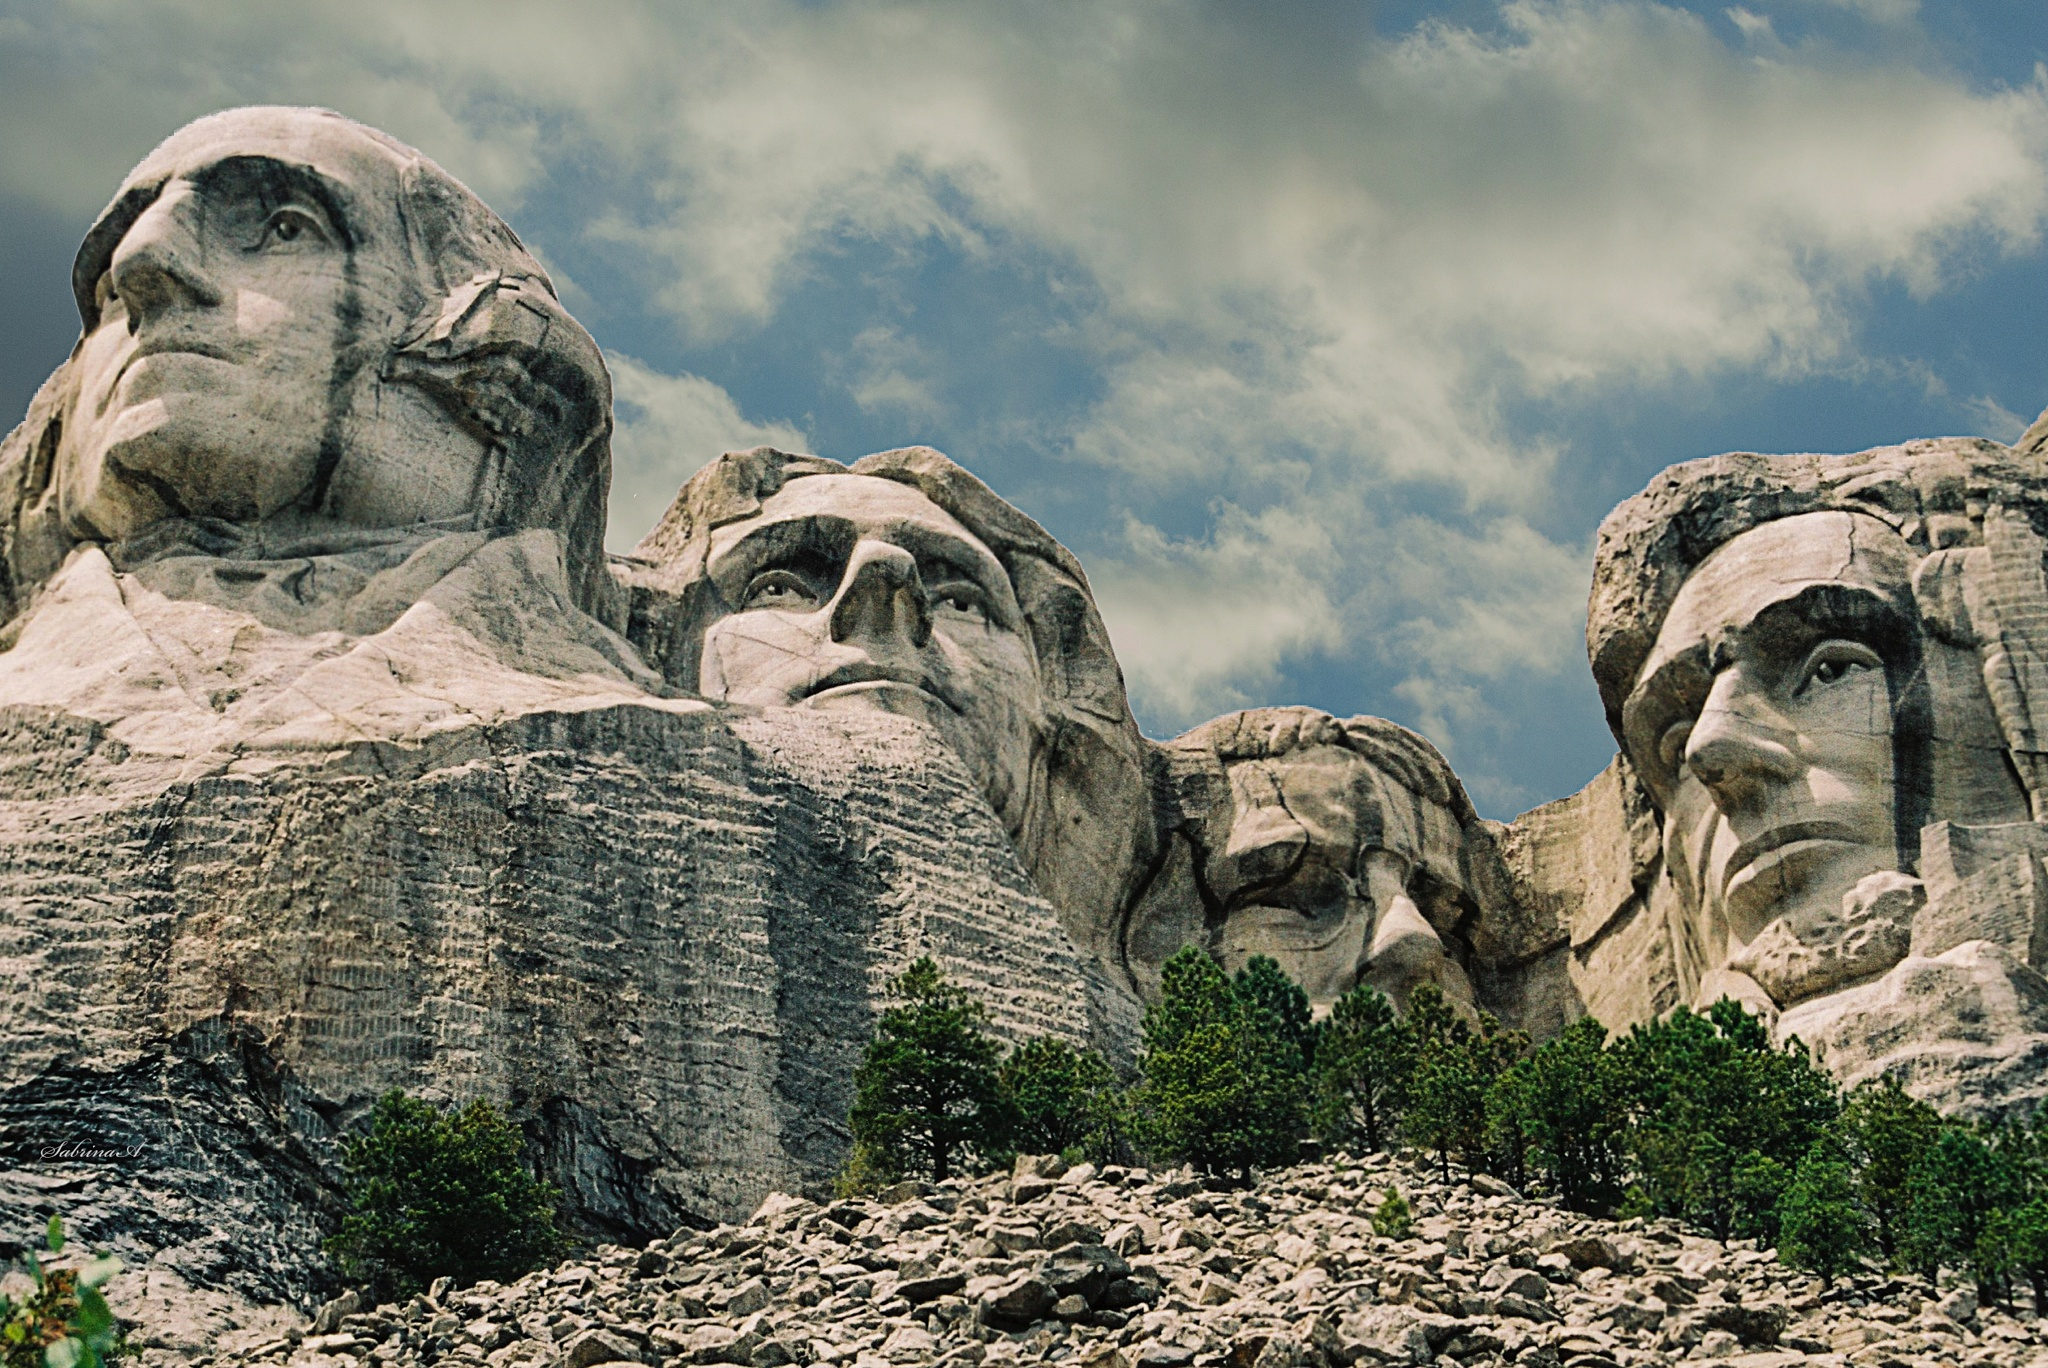 Mount Rushmore by SabrinaA